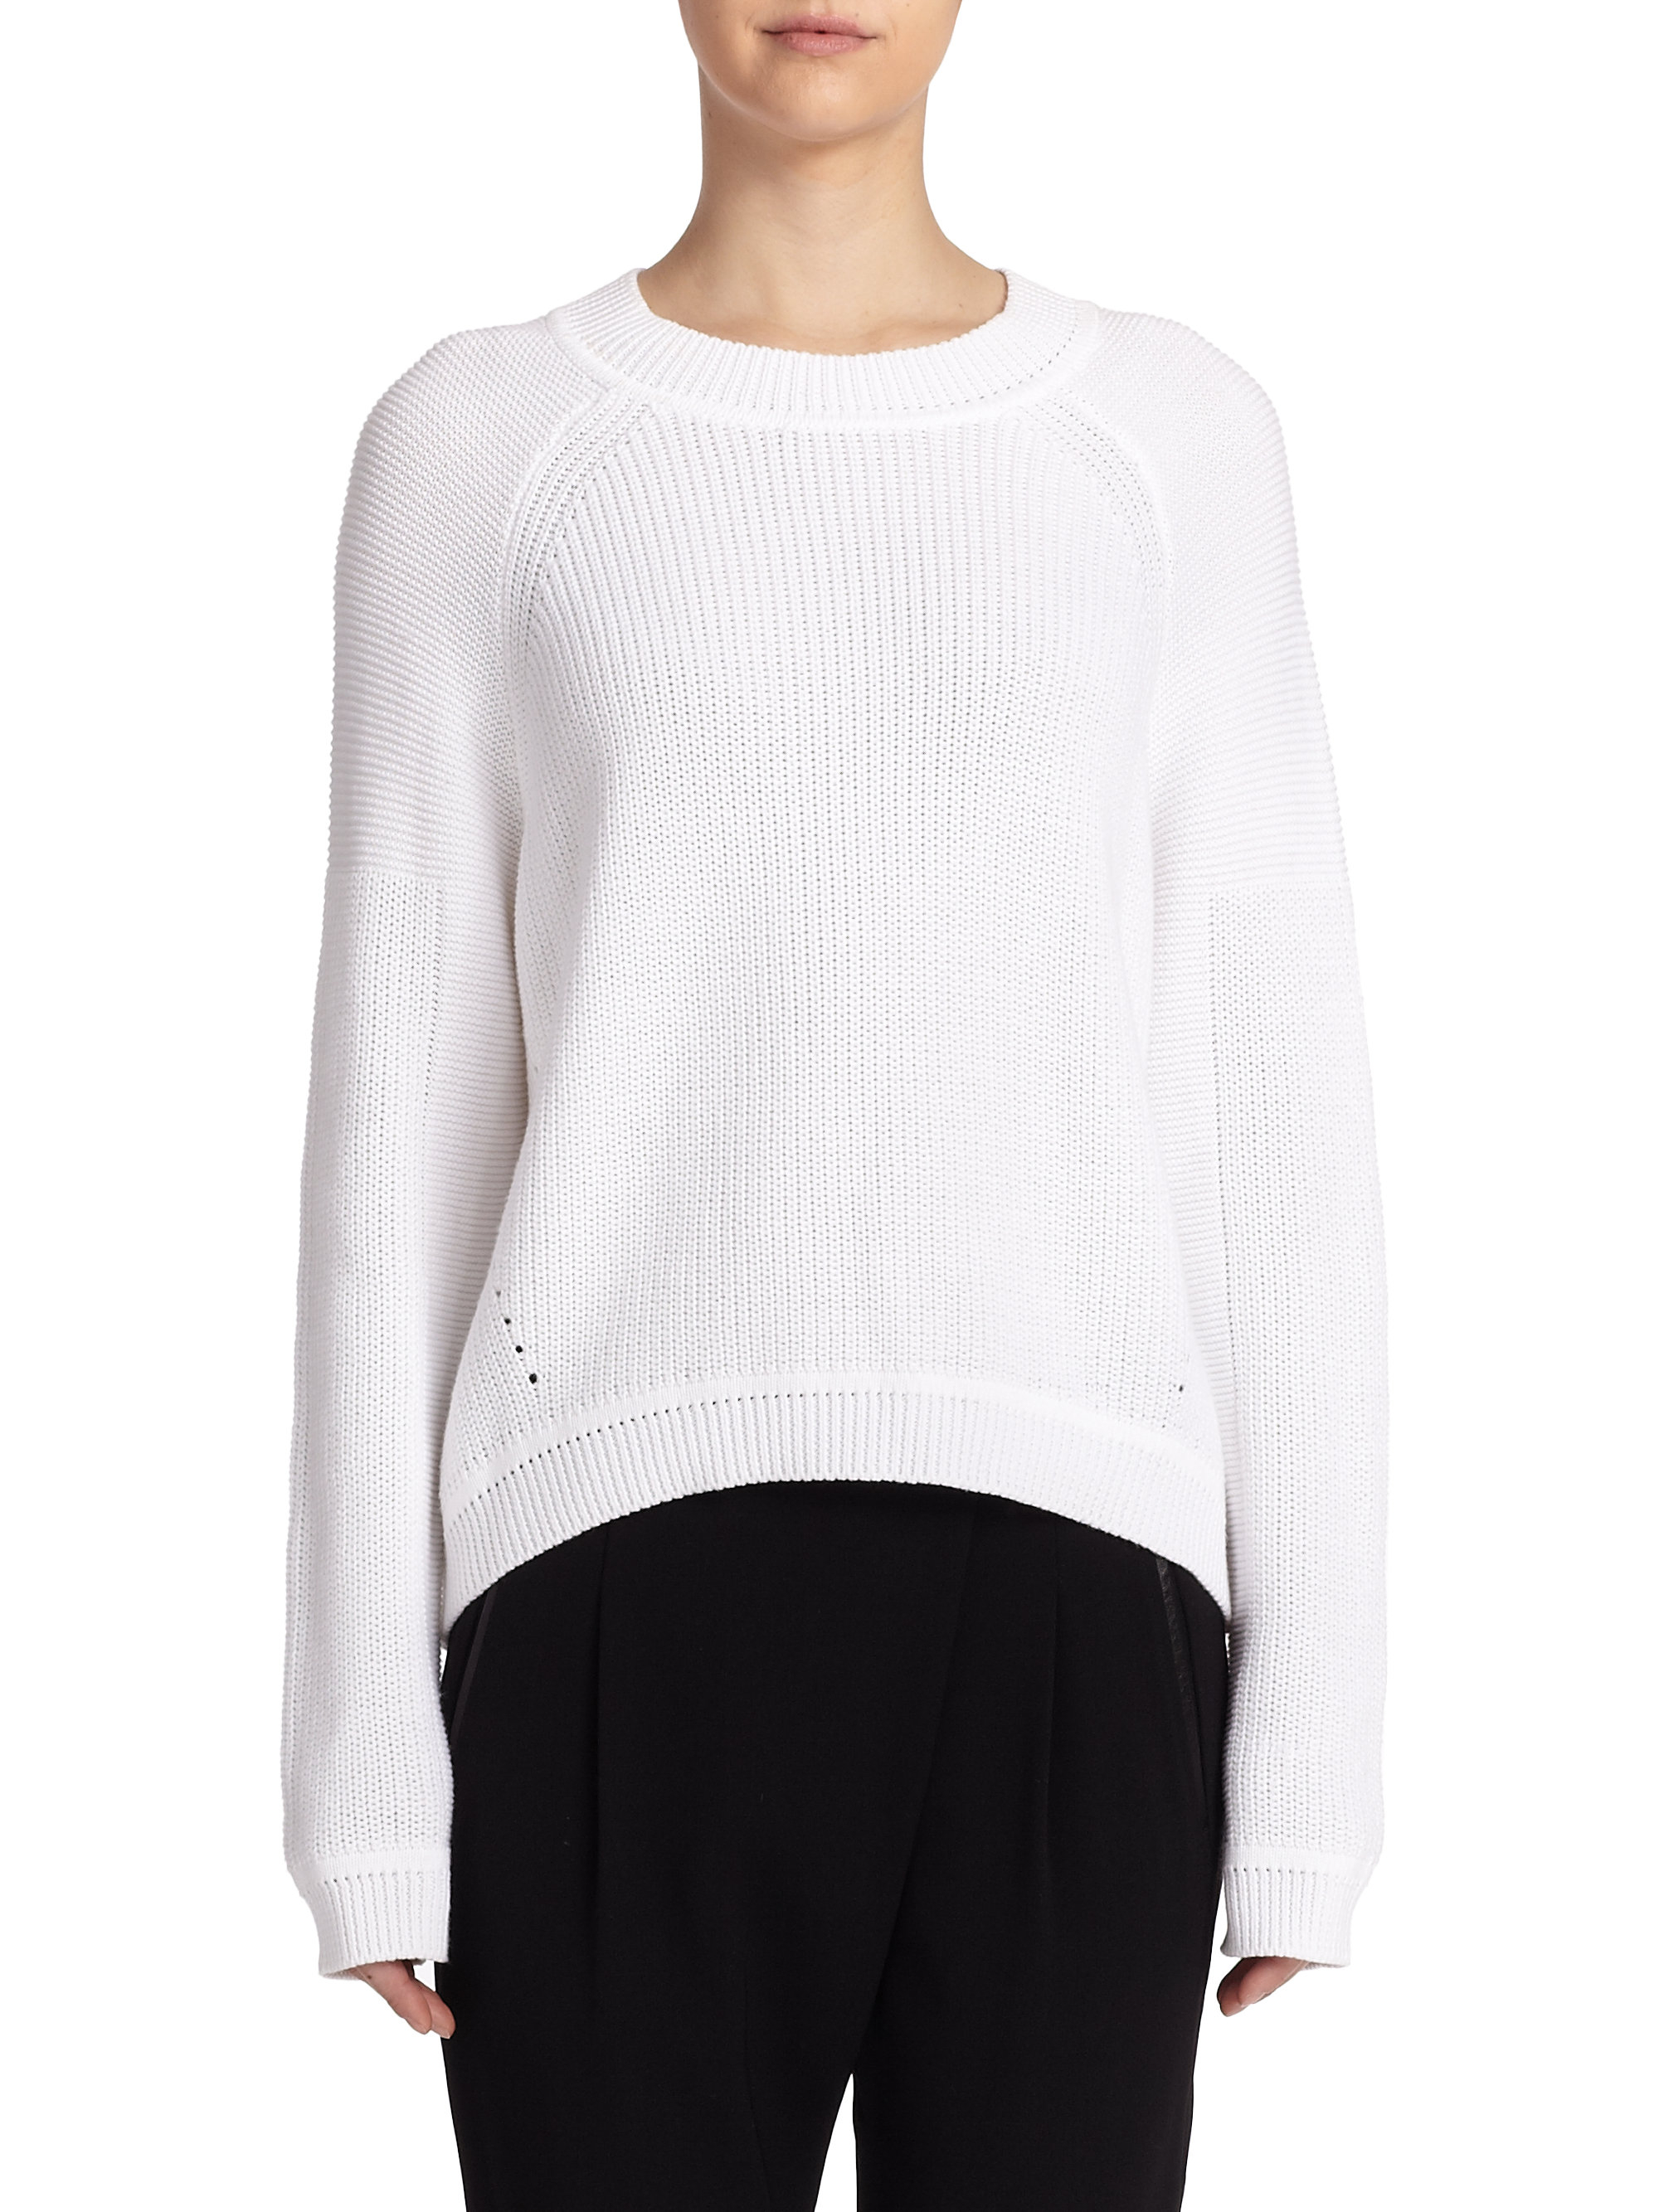 Vince Mixed-Ribbing Cotton Sweater in White | Lyst